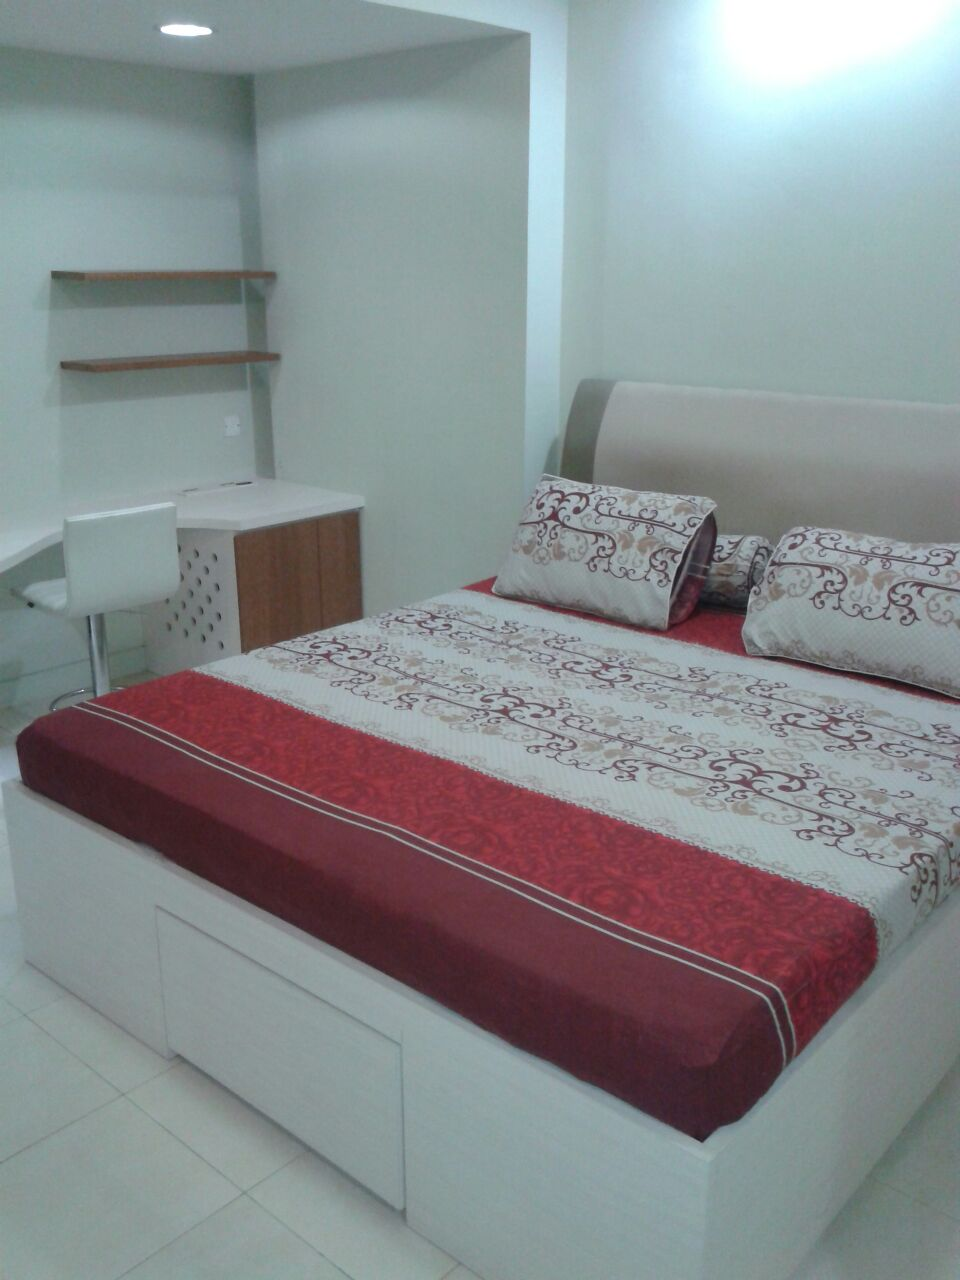 Tamsud B1916 Bedroom - ABDIHome - Bring Home To You